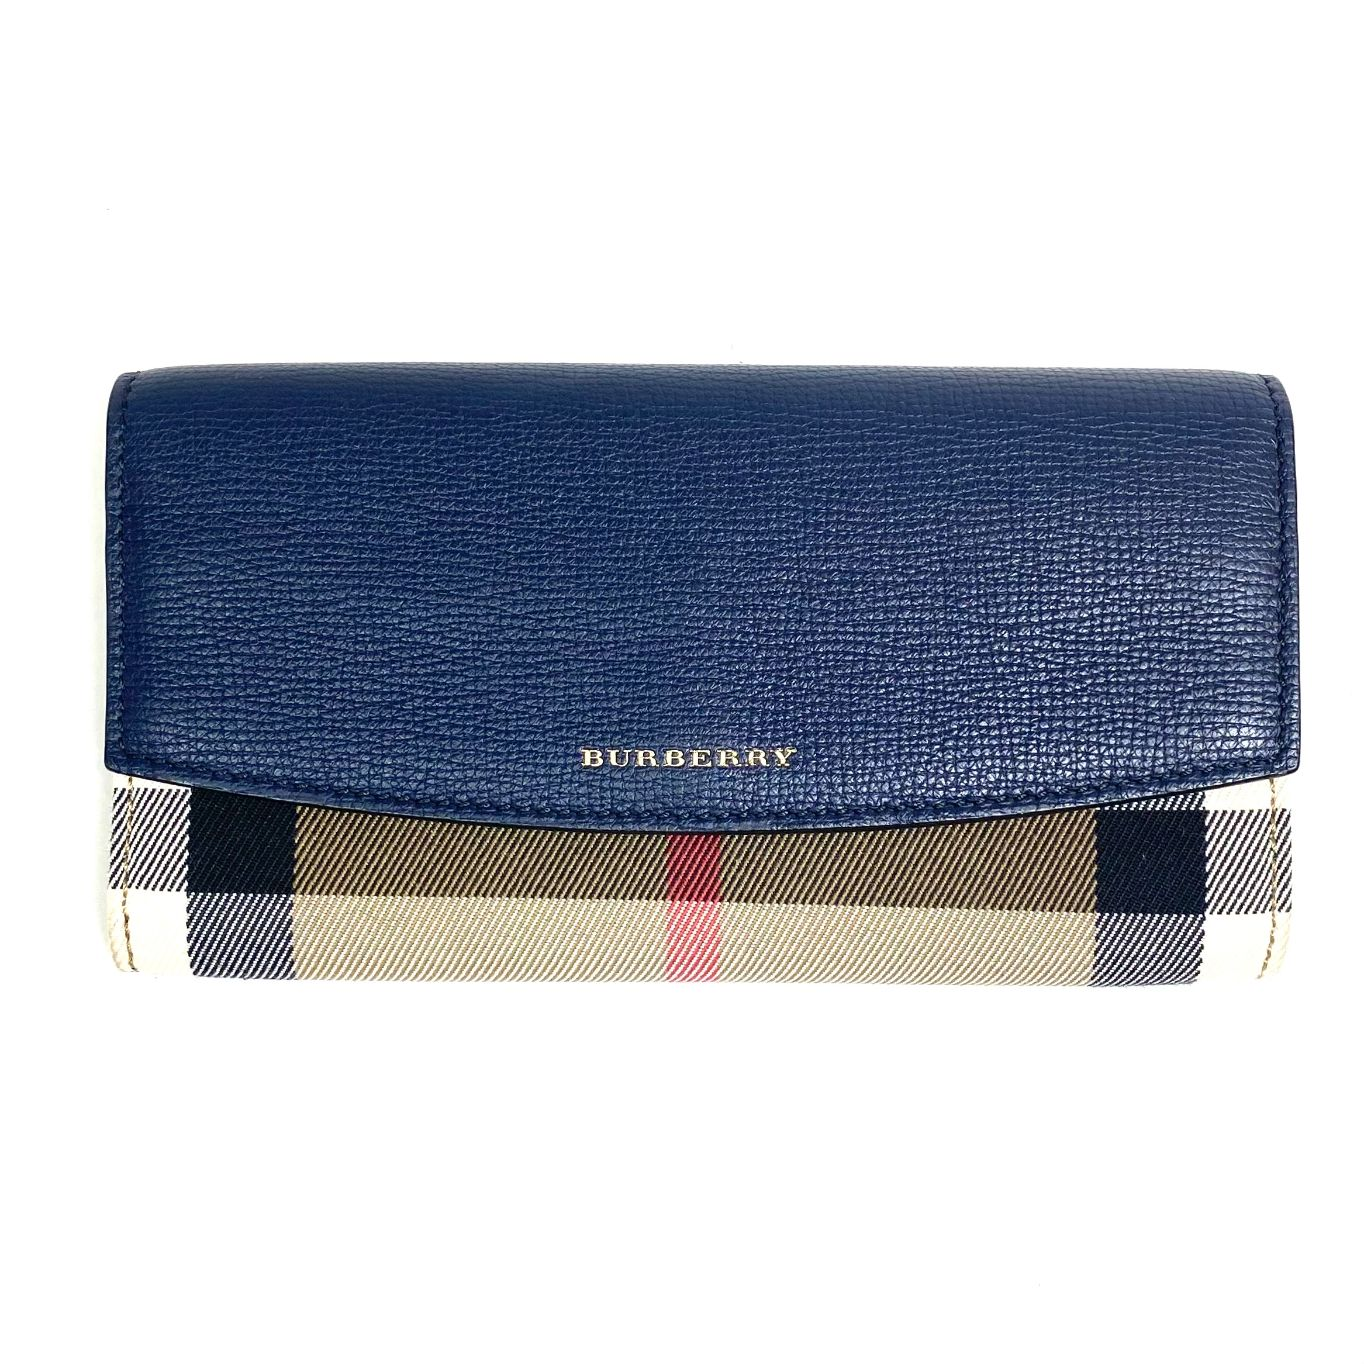 Carteira Burberry Bicolor